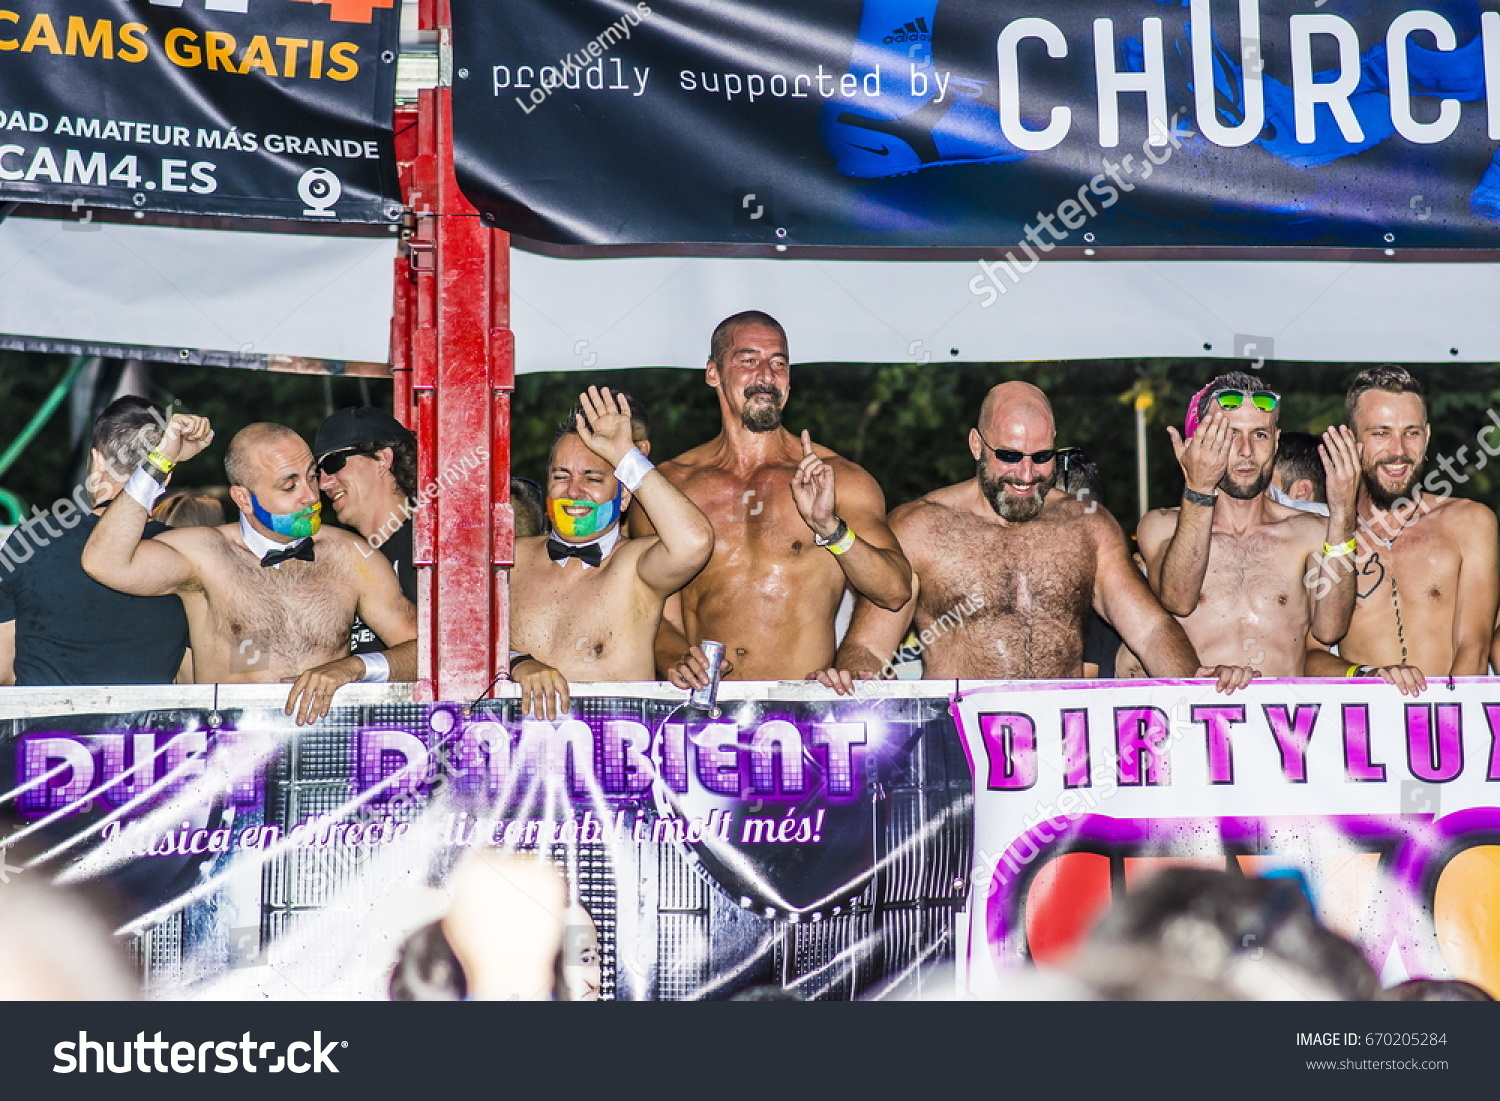 Cam4 Spain madrid spain july 1 2017 parade stock photo (edit now) 670205284